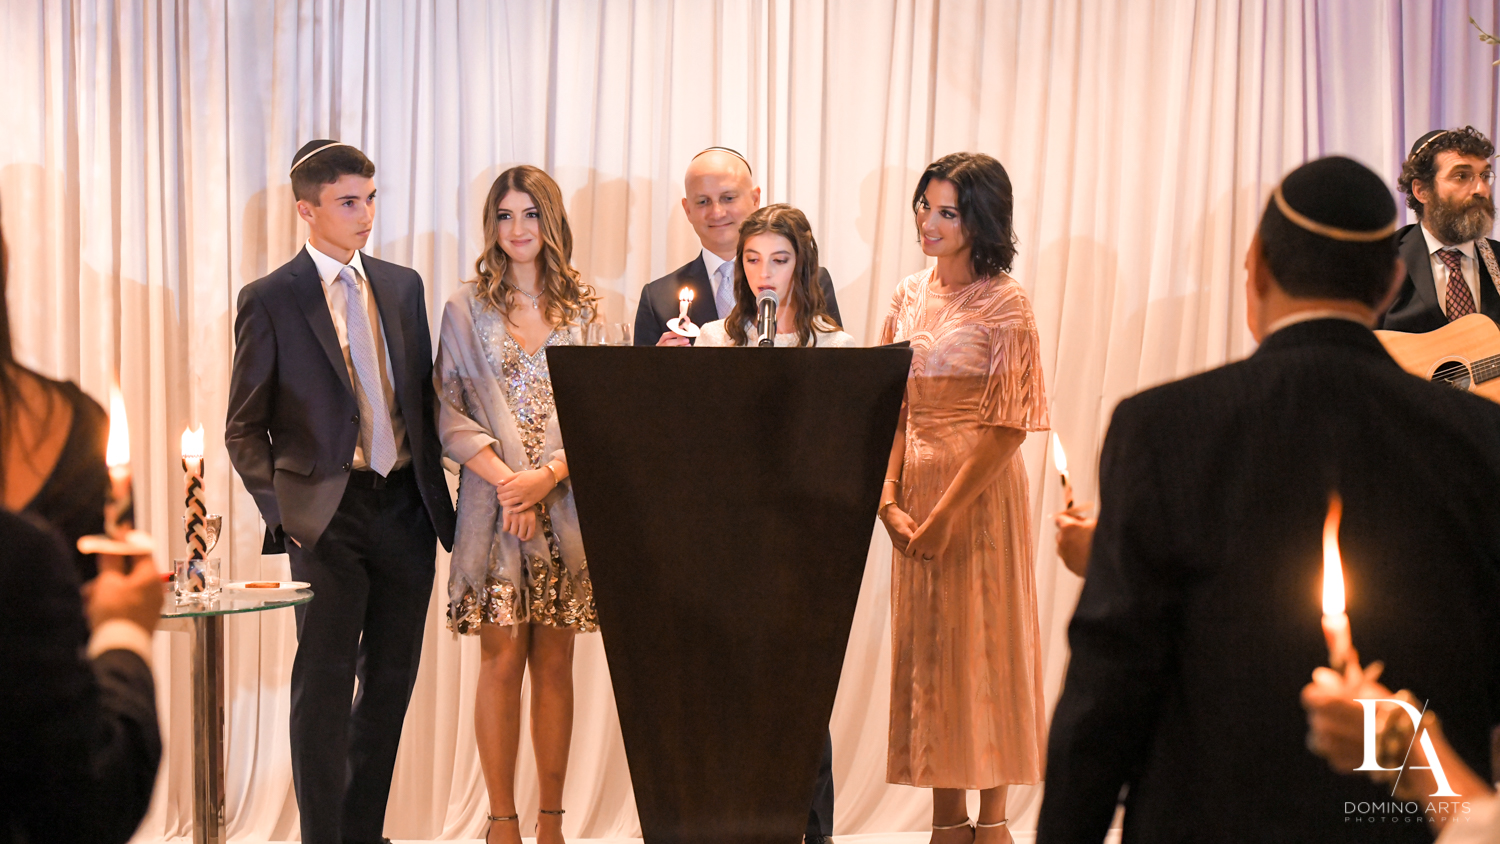 reading Torah at Masquerade Ball Bat Mitzvah at Ritz Carlton Fort Lauderdale by Domino Arts Photography